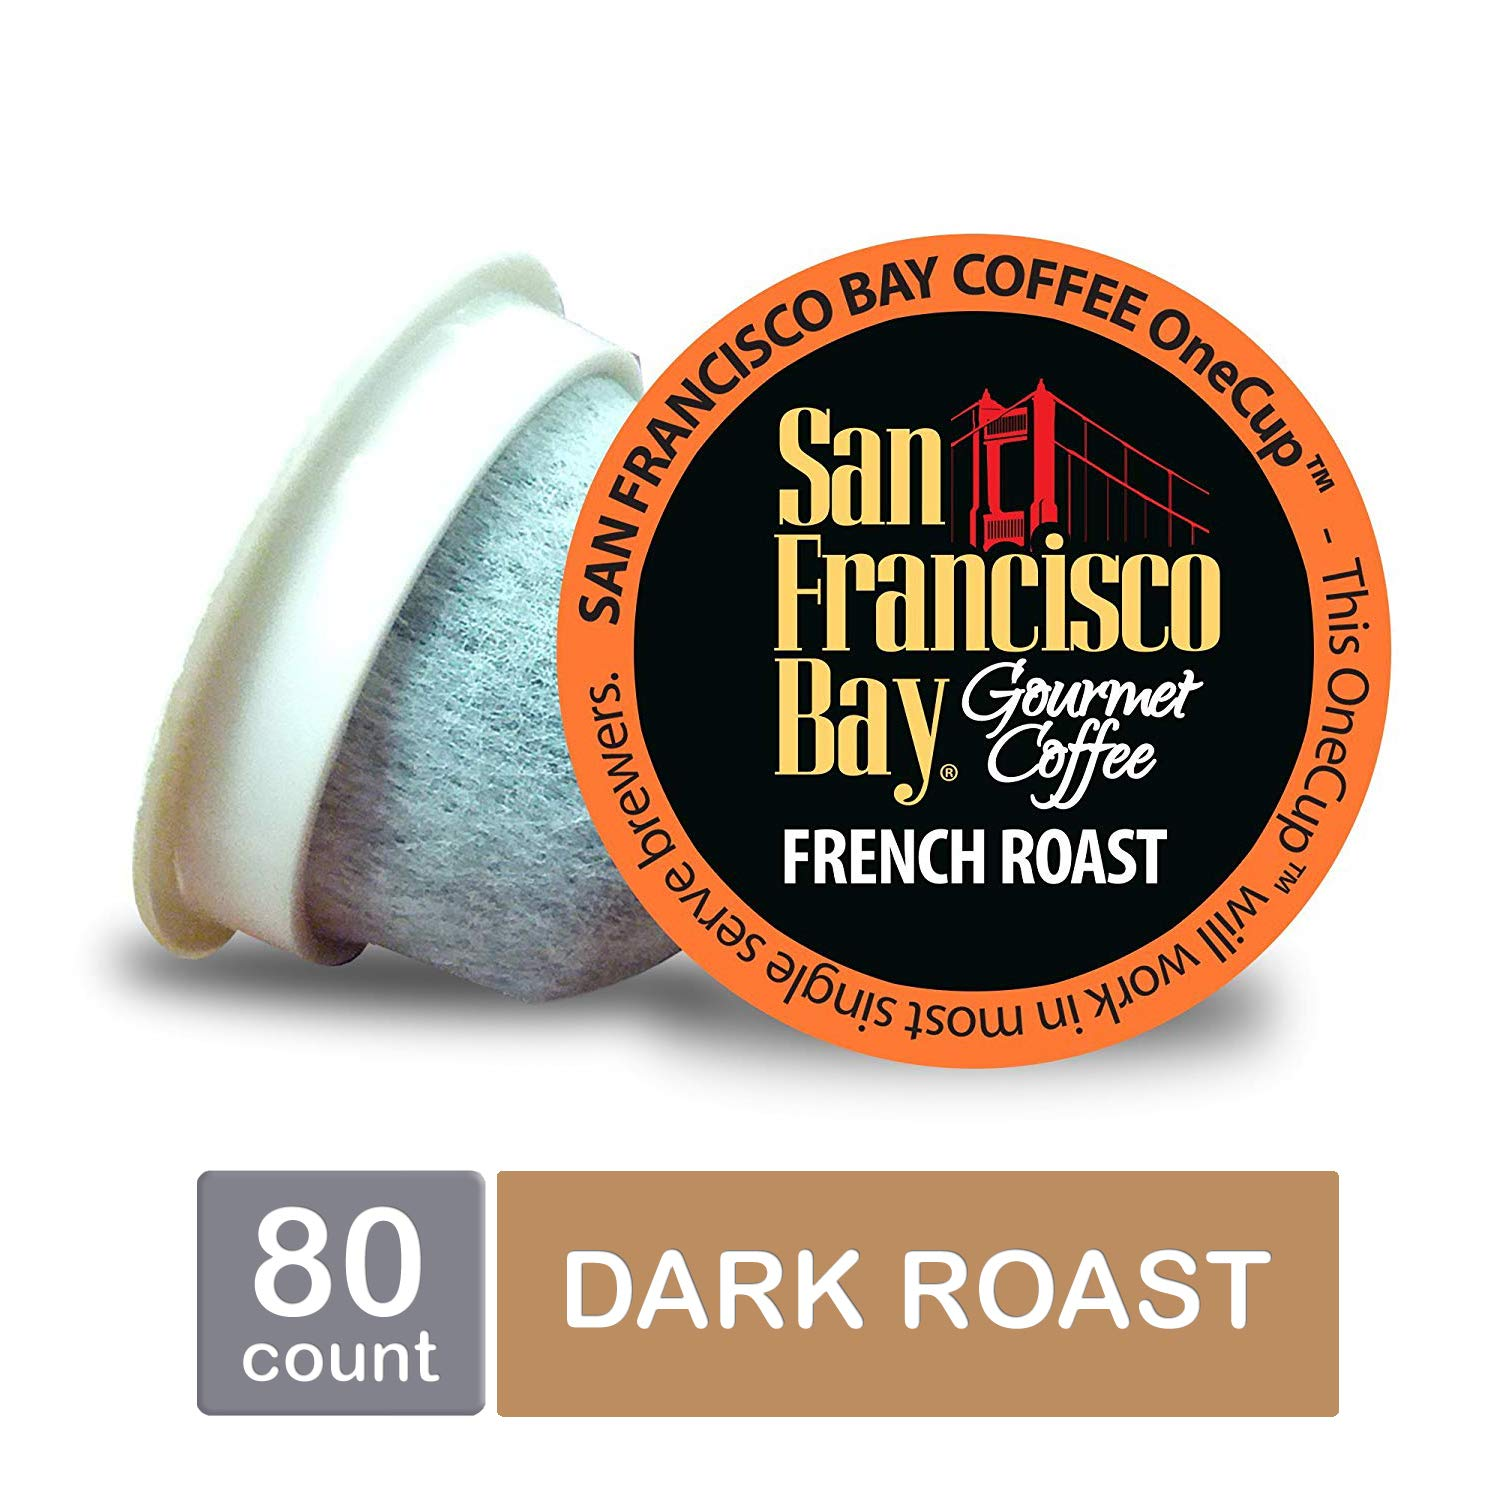 San Francisco Bay OneCup, French Roast, Single Serve Coffee K-Cup Pods, Keurig Compatible, 80 Count by SAN FRANCISCO BAY